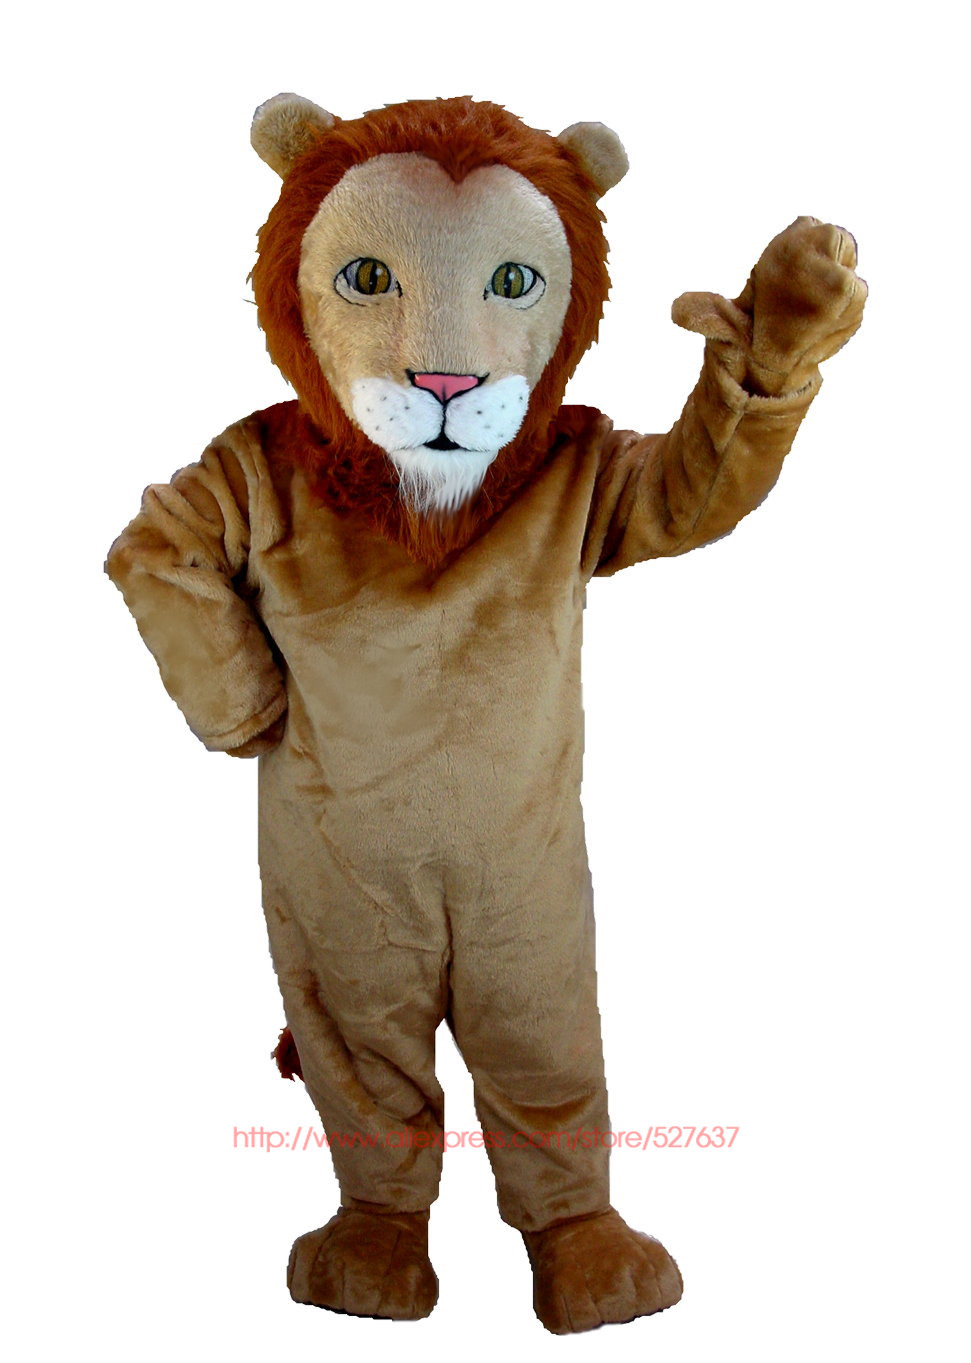 d6c2fd307 Get Quotations · New African Lion Mascot Costume (Thermolite) school mascot  costumes